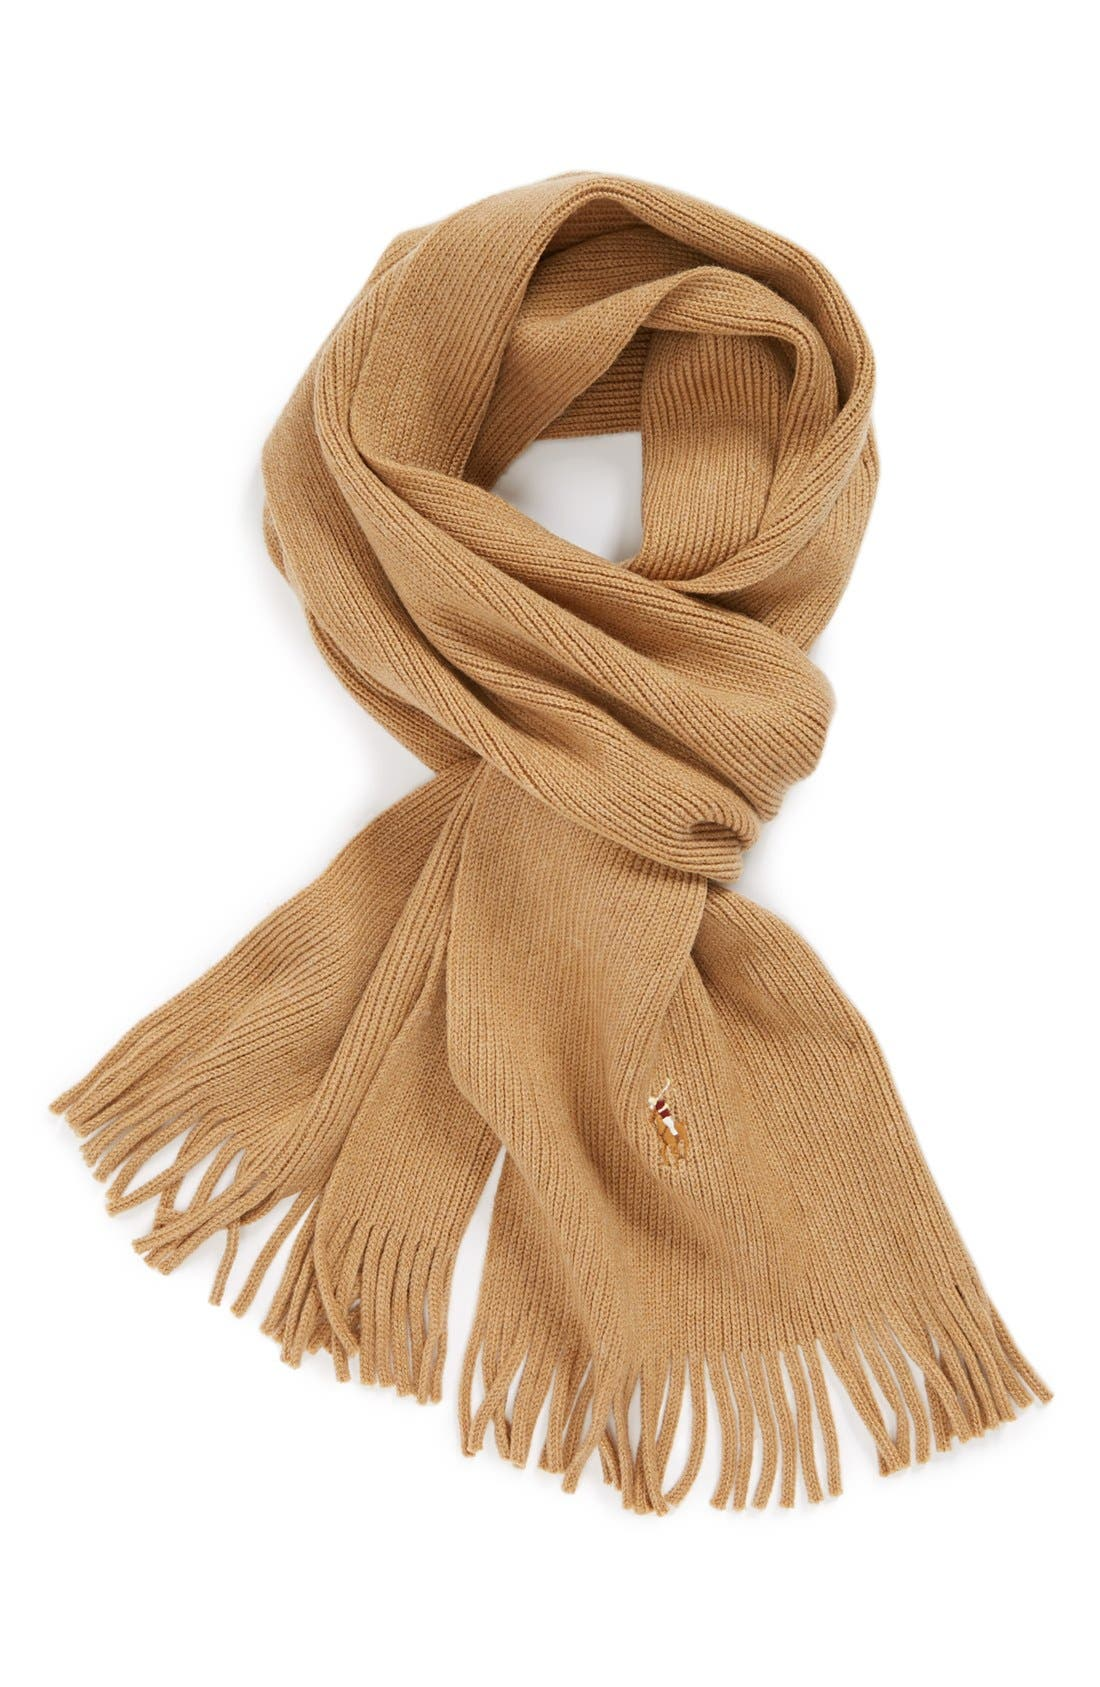 Alternate Image 1 Selected - Polo Ralph Lauren Merino Wool Scarf